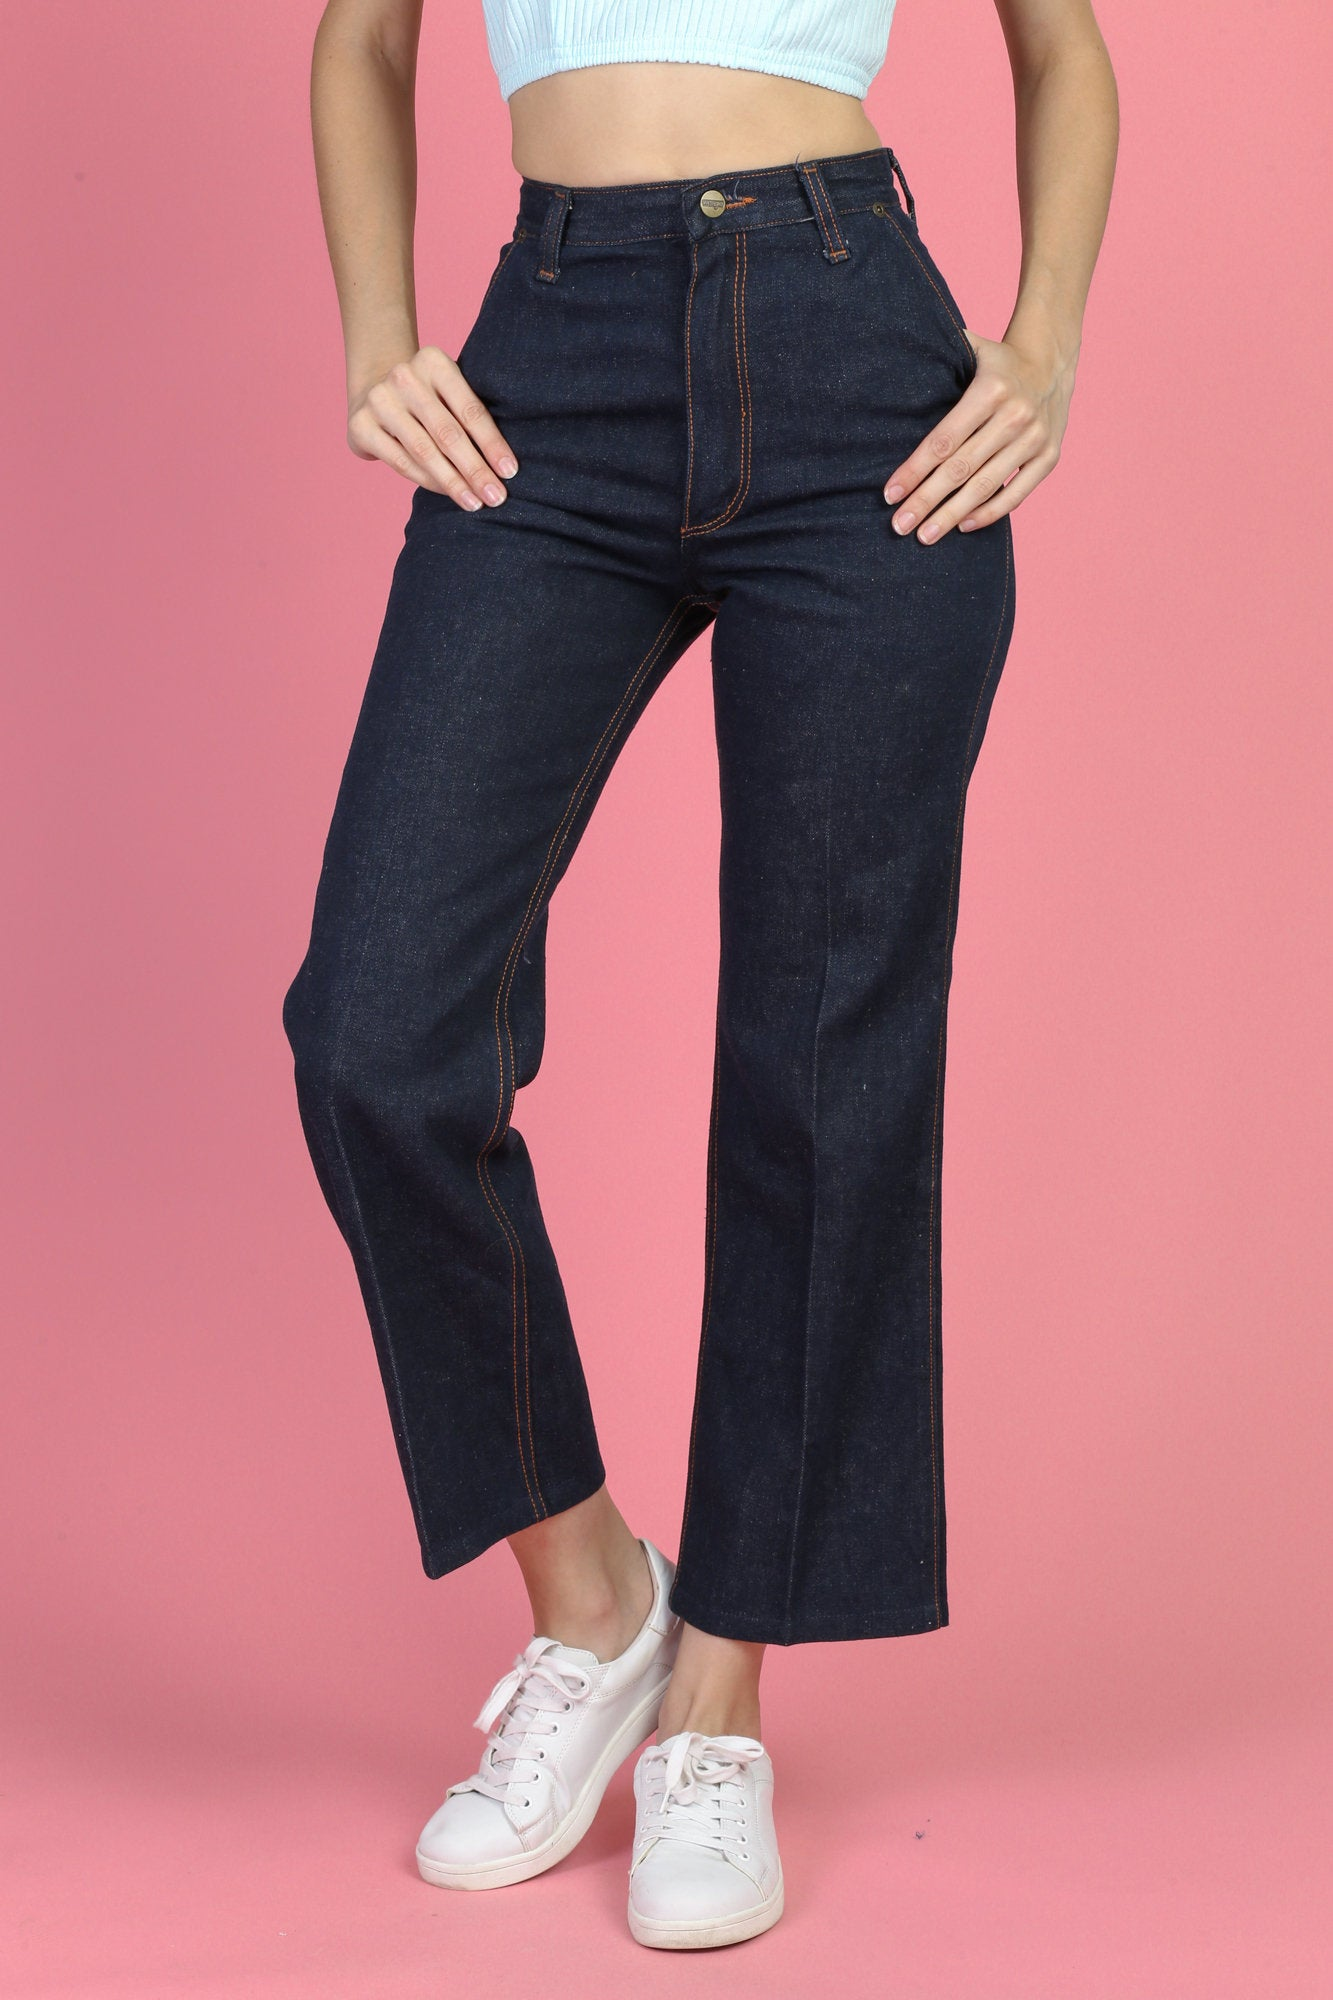 60s 70s Wrangler High Waisted Jeans - Small